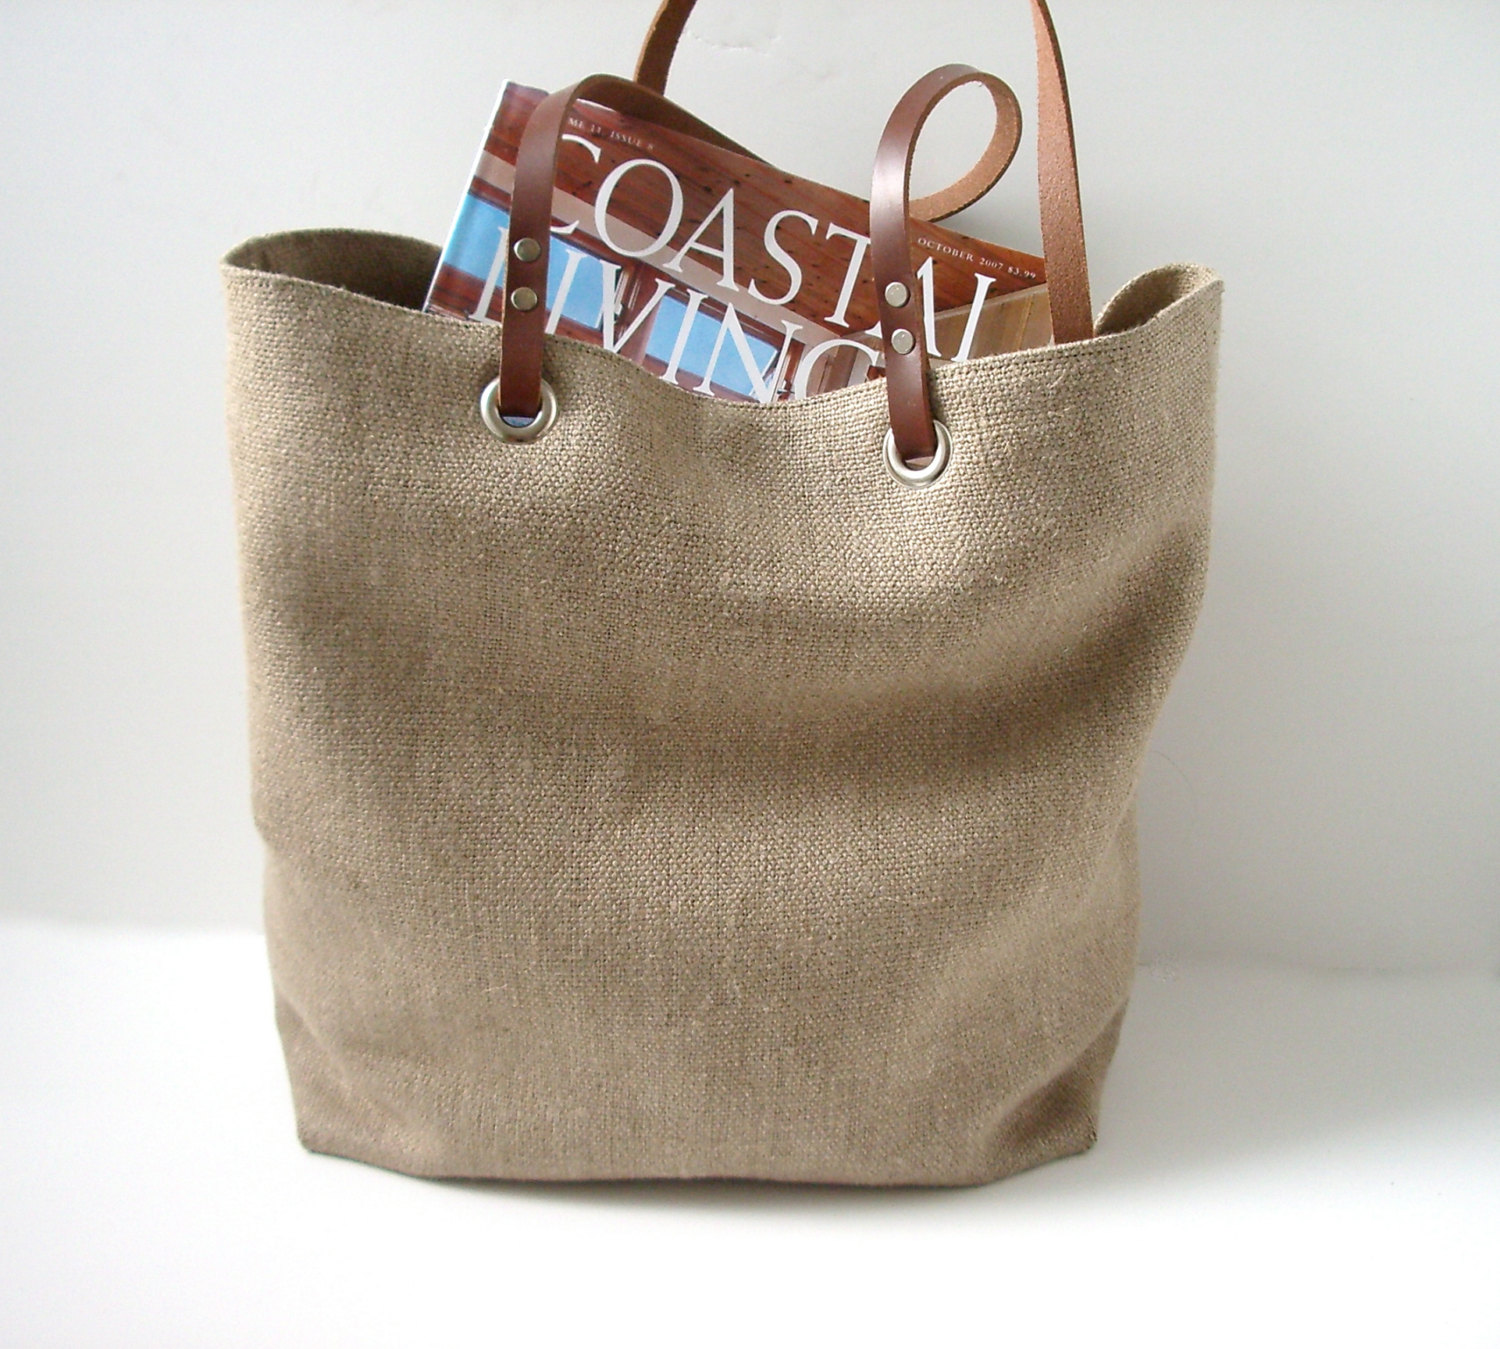 Woven Jute Beach Bag, Summer Bag on Storenvy